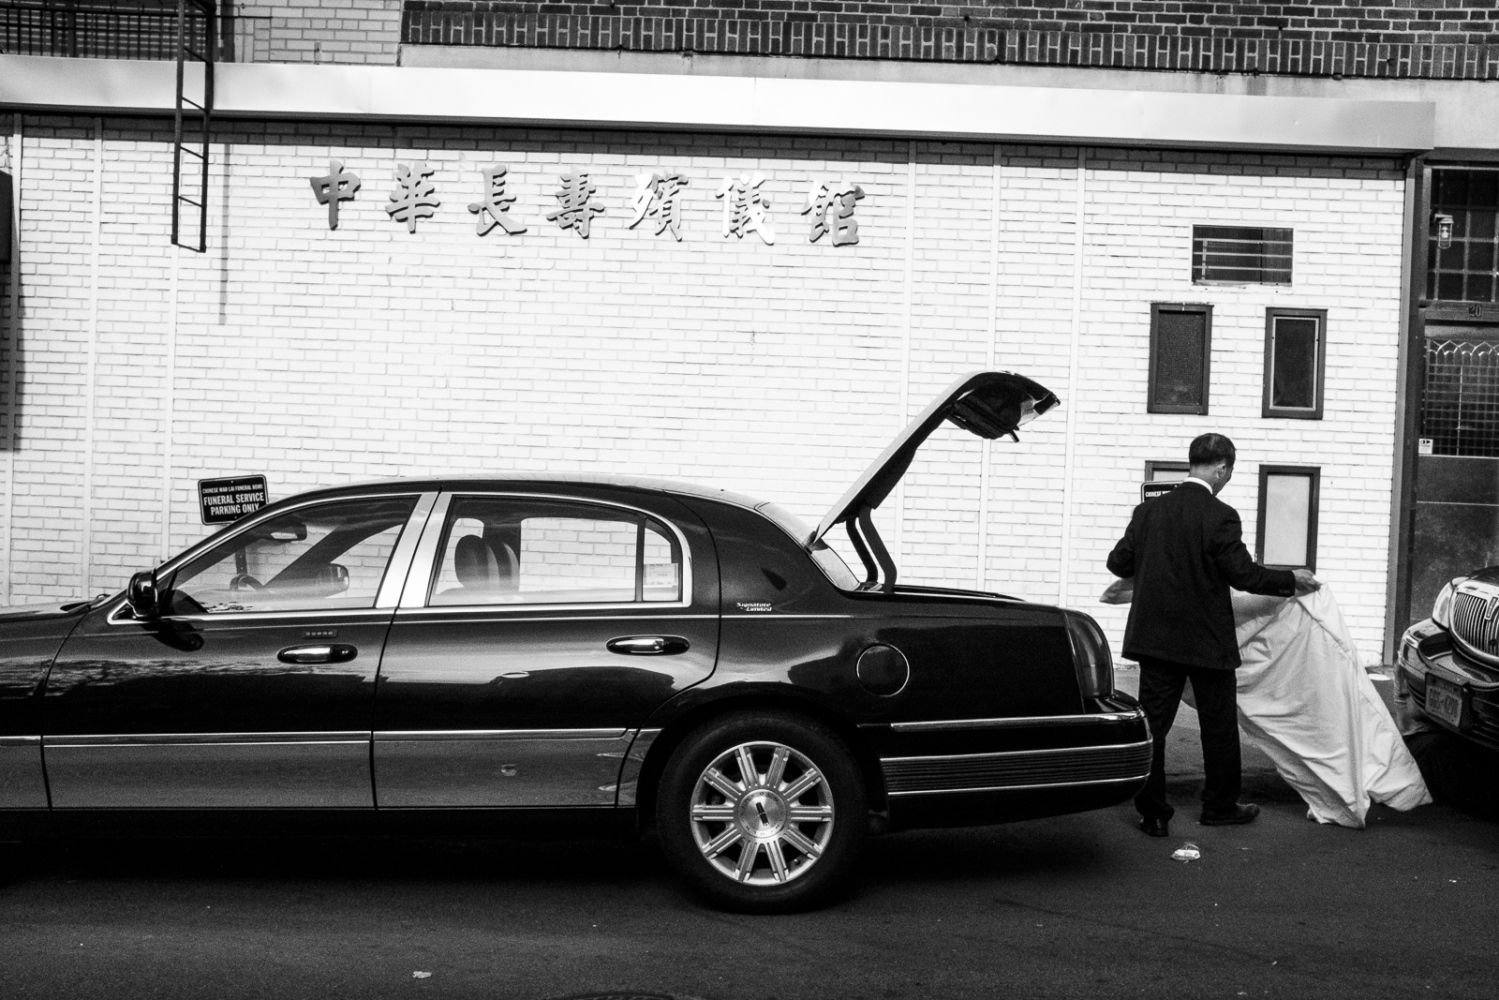 Loading the Trunk at the Mortuary, NYC